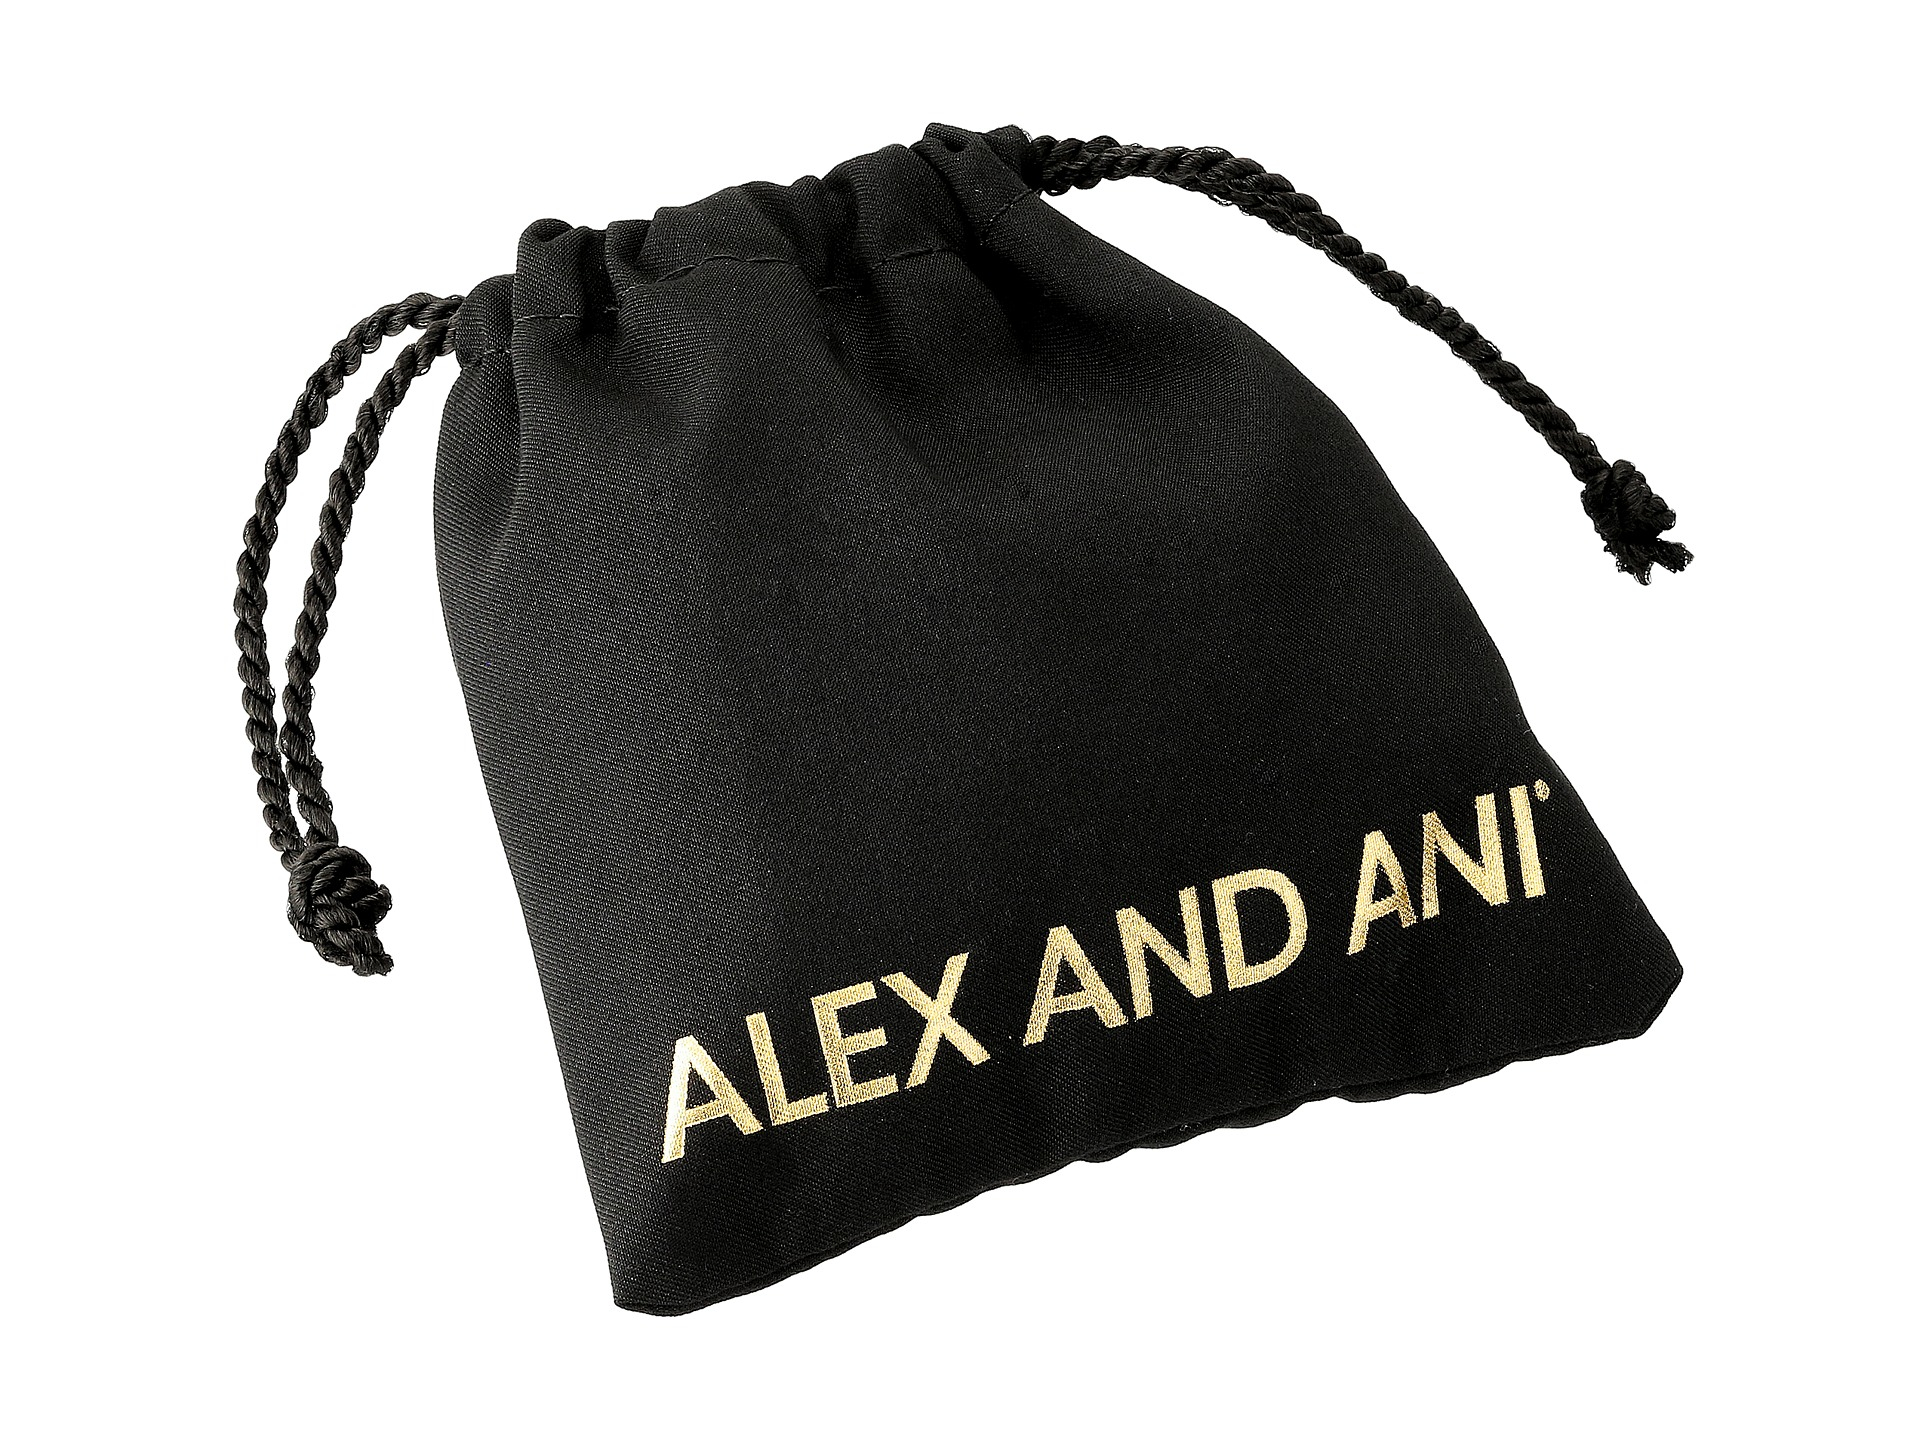 Alex and ani Retro Glam Wrap Bracelet in Silver (Crystal/Silver ...